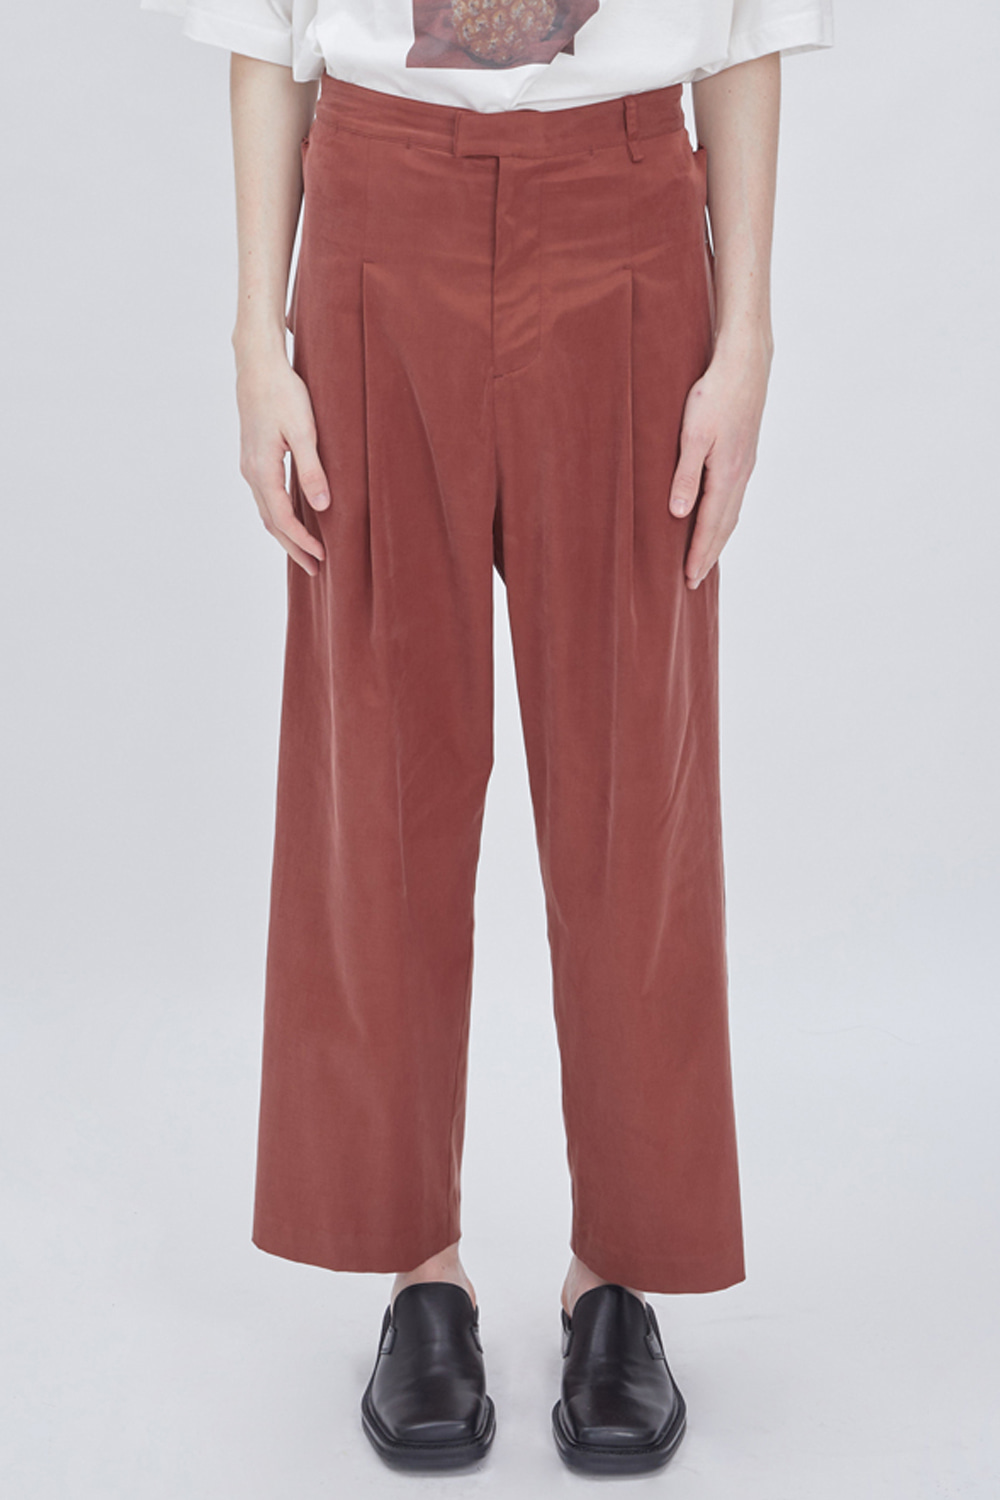 SIDE POCKET WIDE PANTS (WINE)